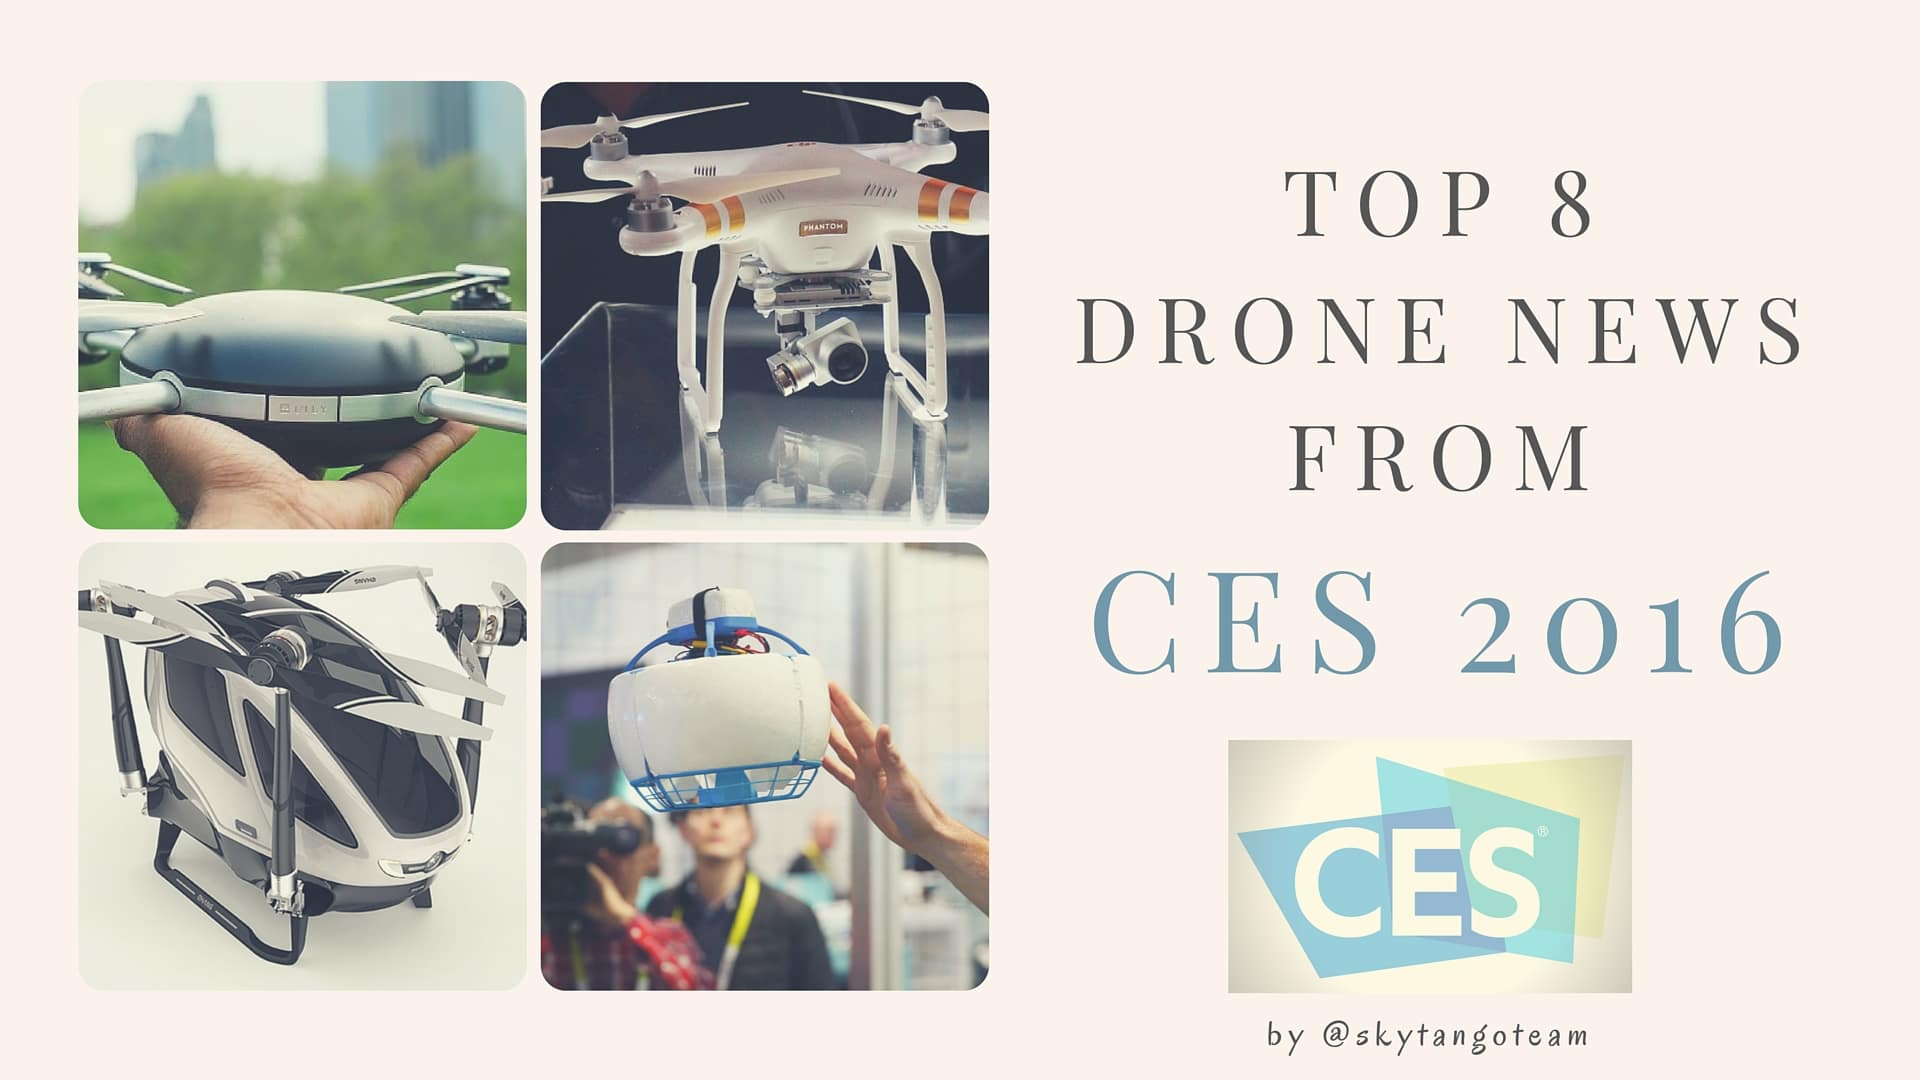 Top 8 Drone News From CES 2016